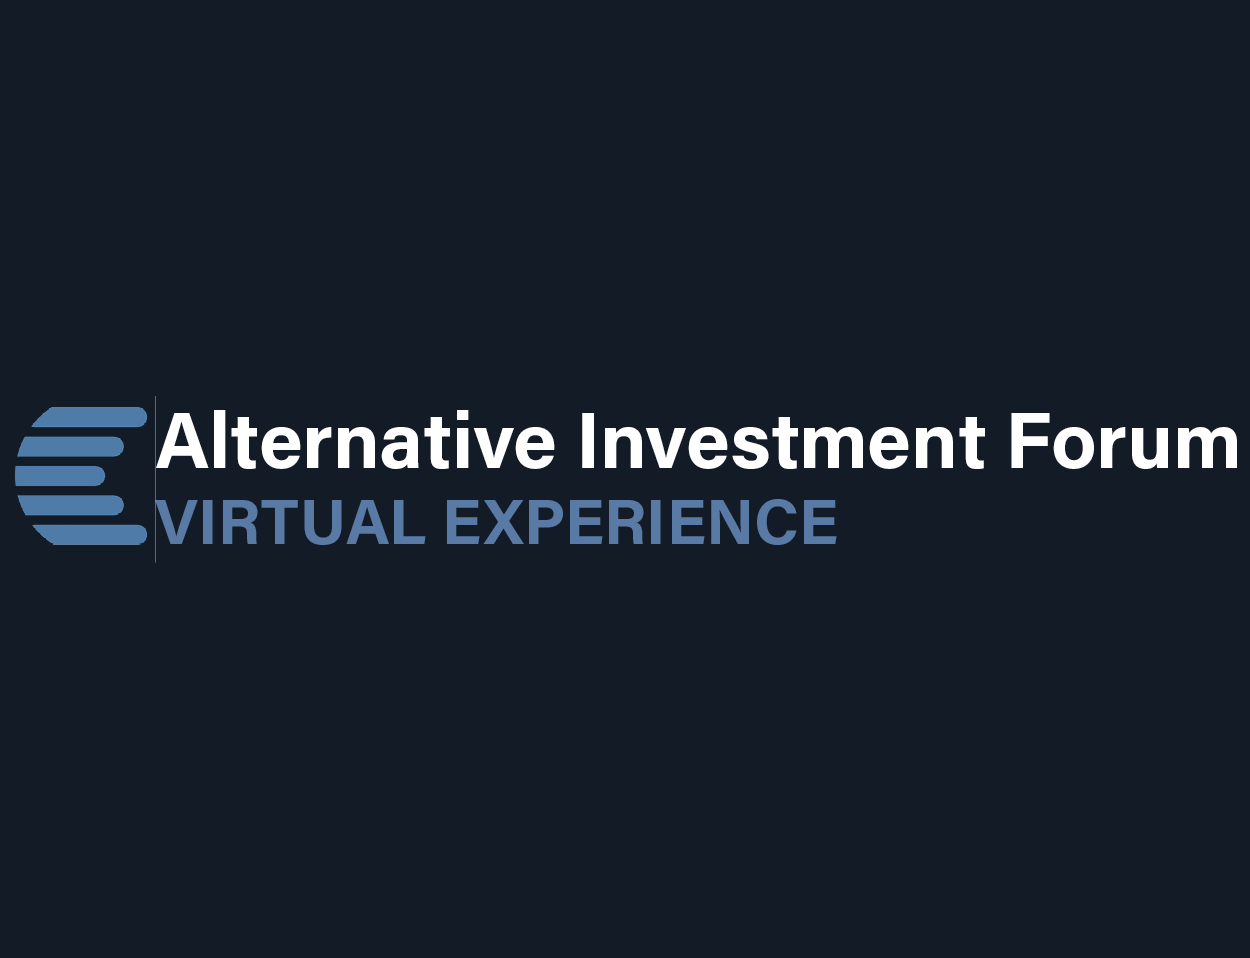 The Alternative Investment Forum – Virtual Experience 2020